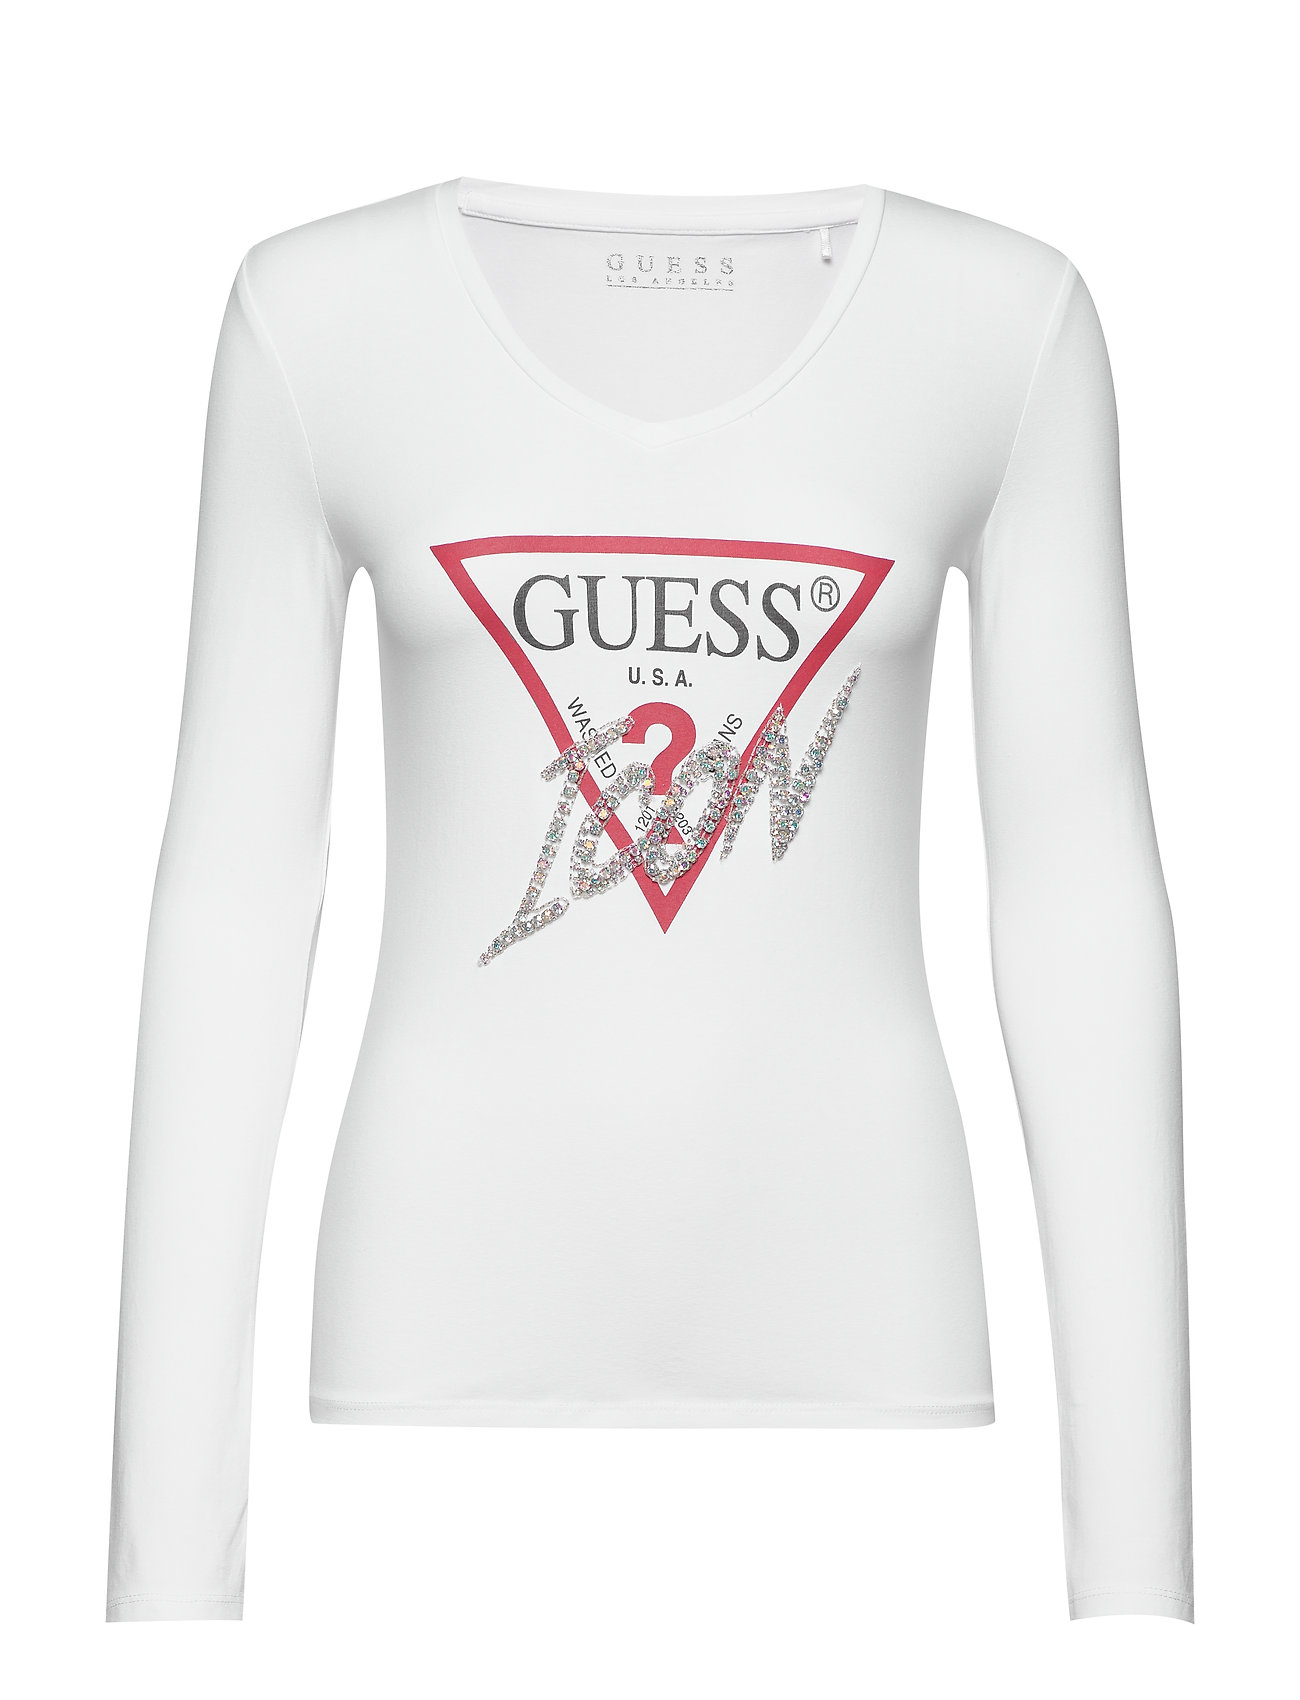 GUESS Jeans LS RN ICON TEE - TRUE WHITE A000